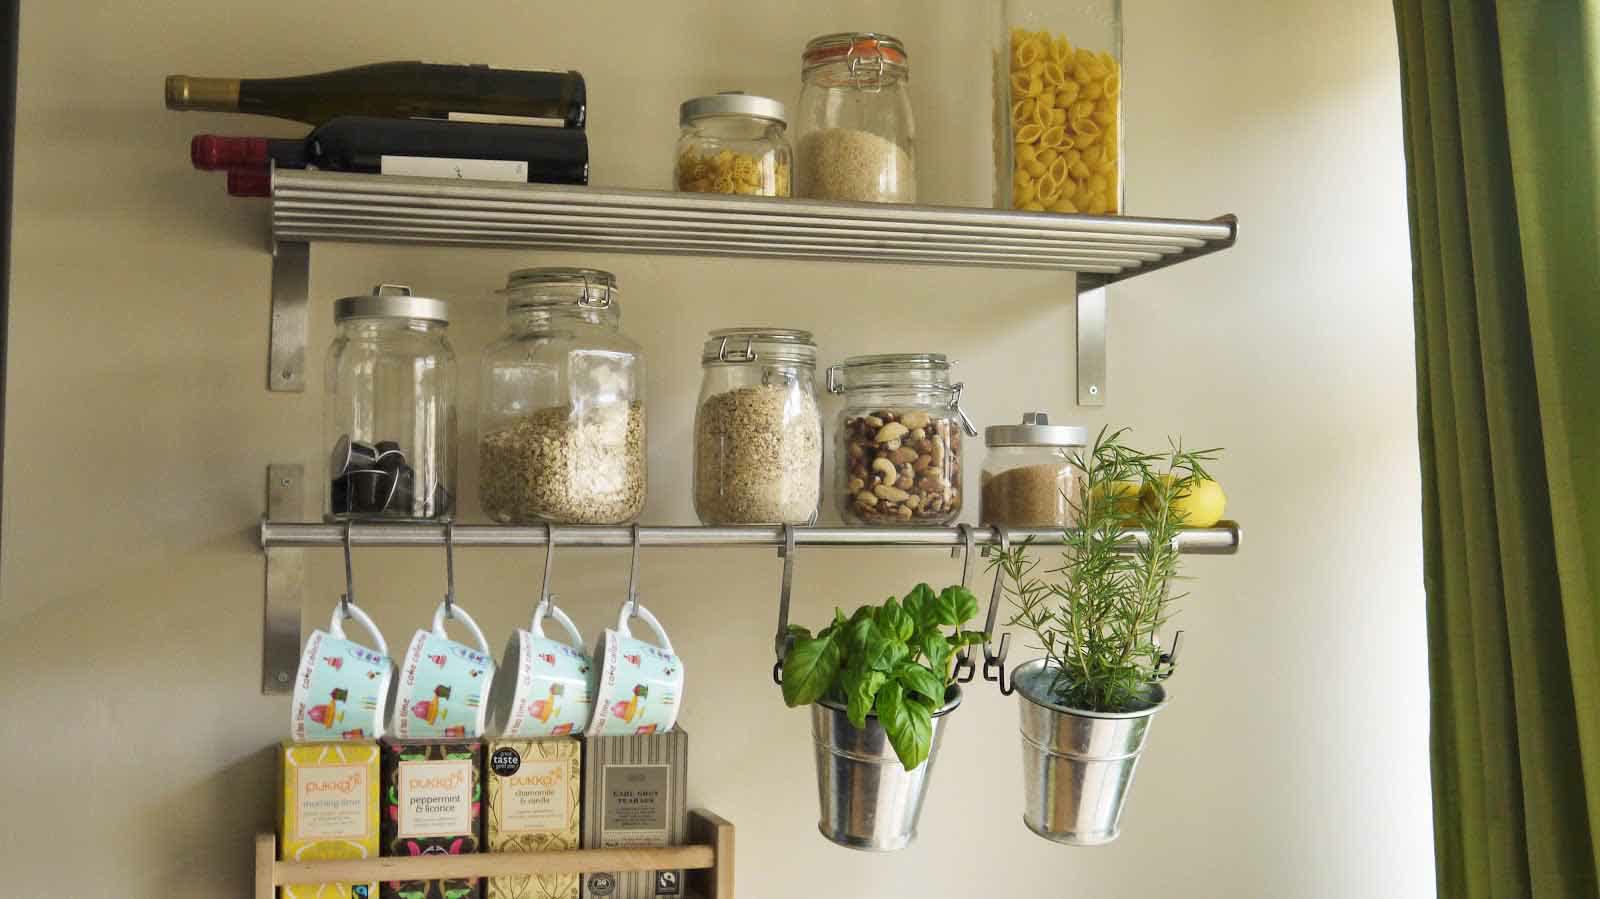 Kitchen Shelf Organization 11 Clever And Easy Kitchen Organization Ideas Youll Love